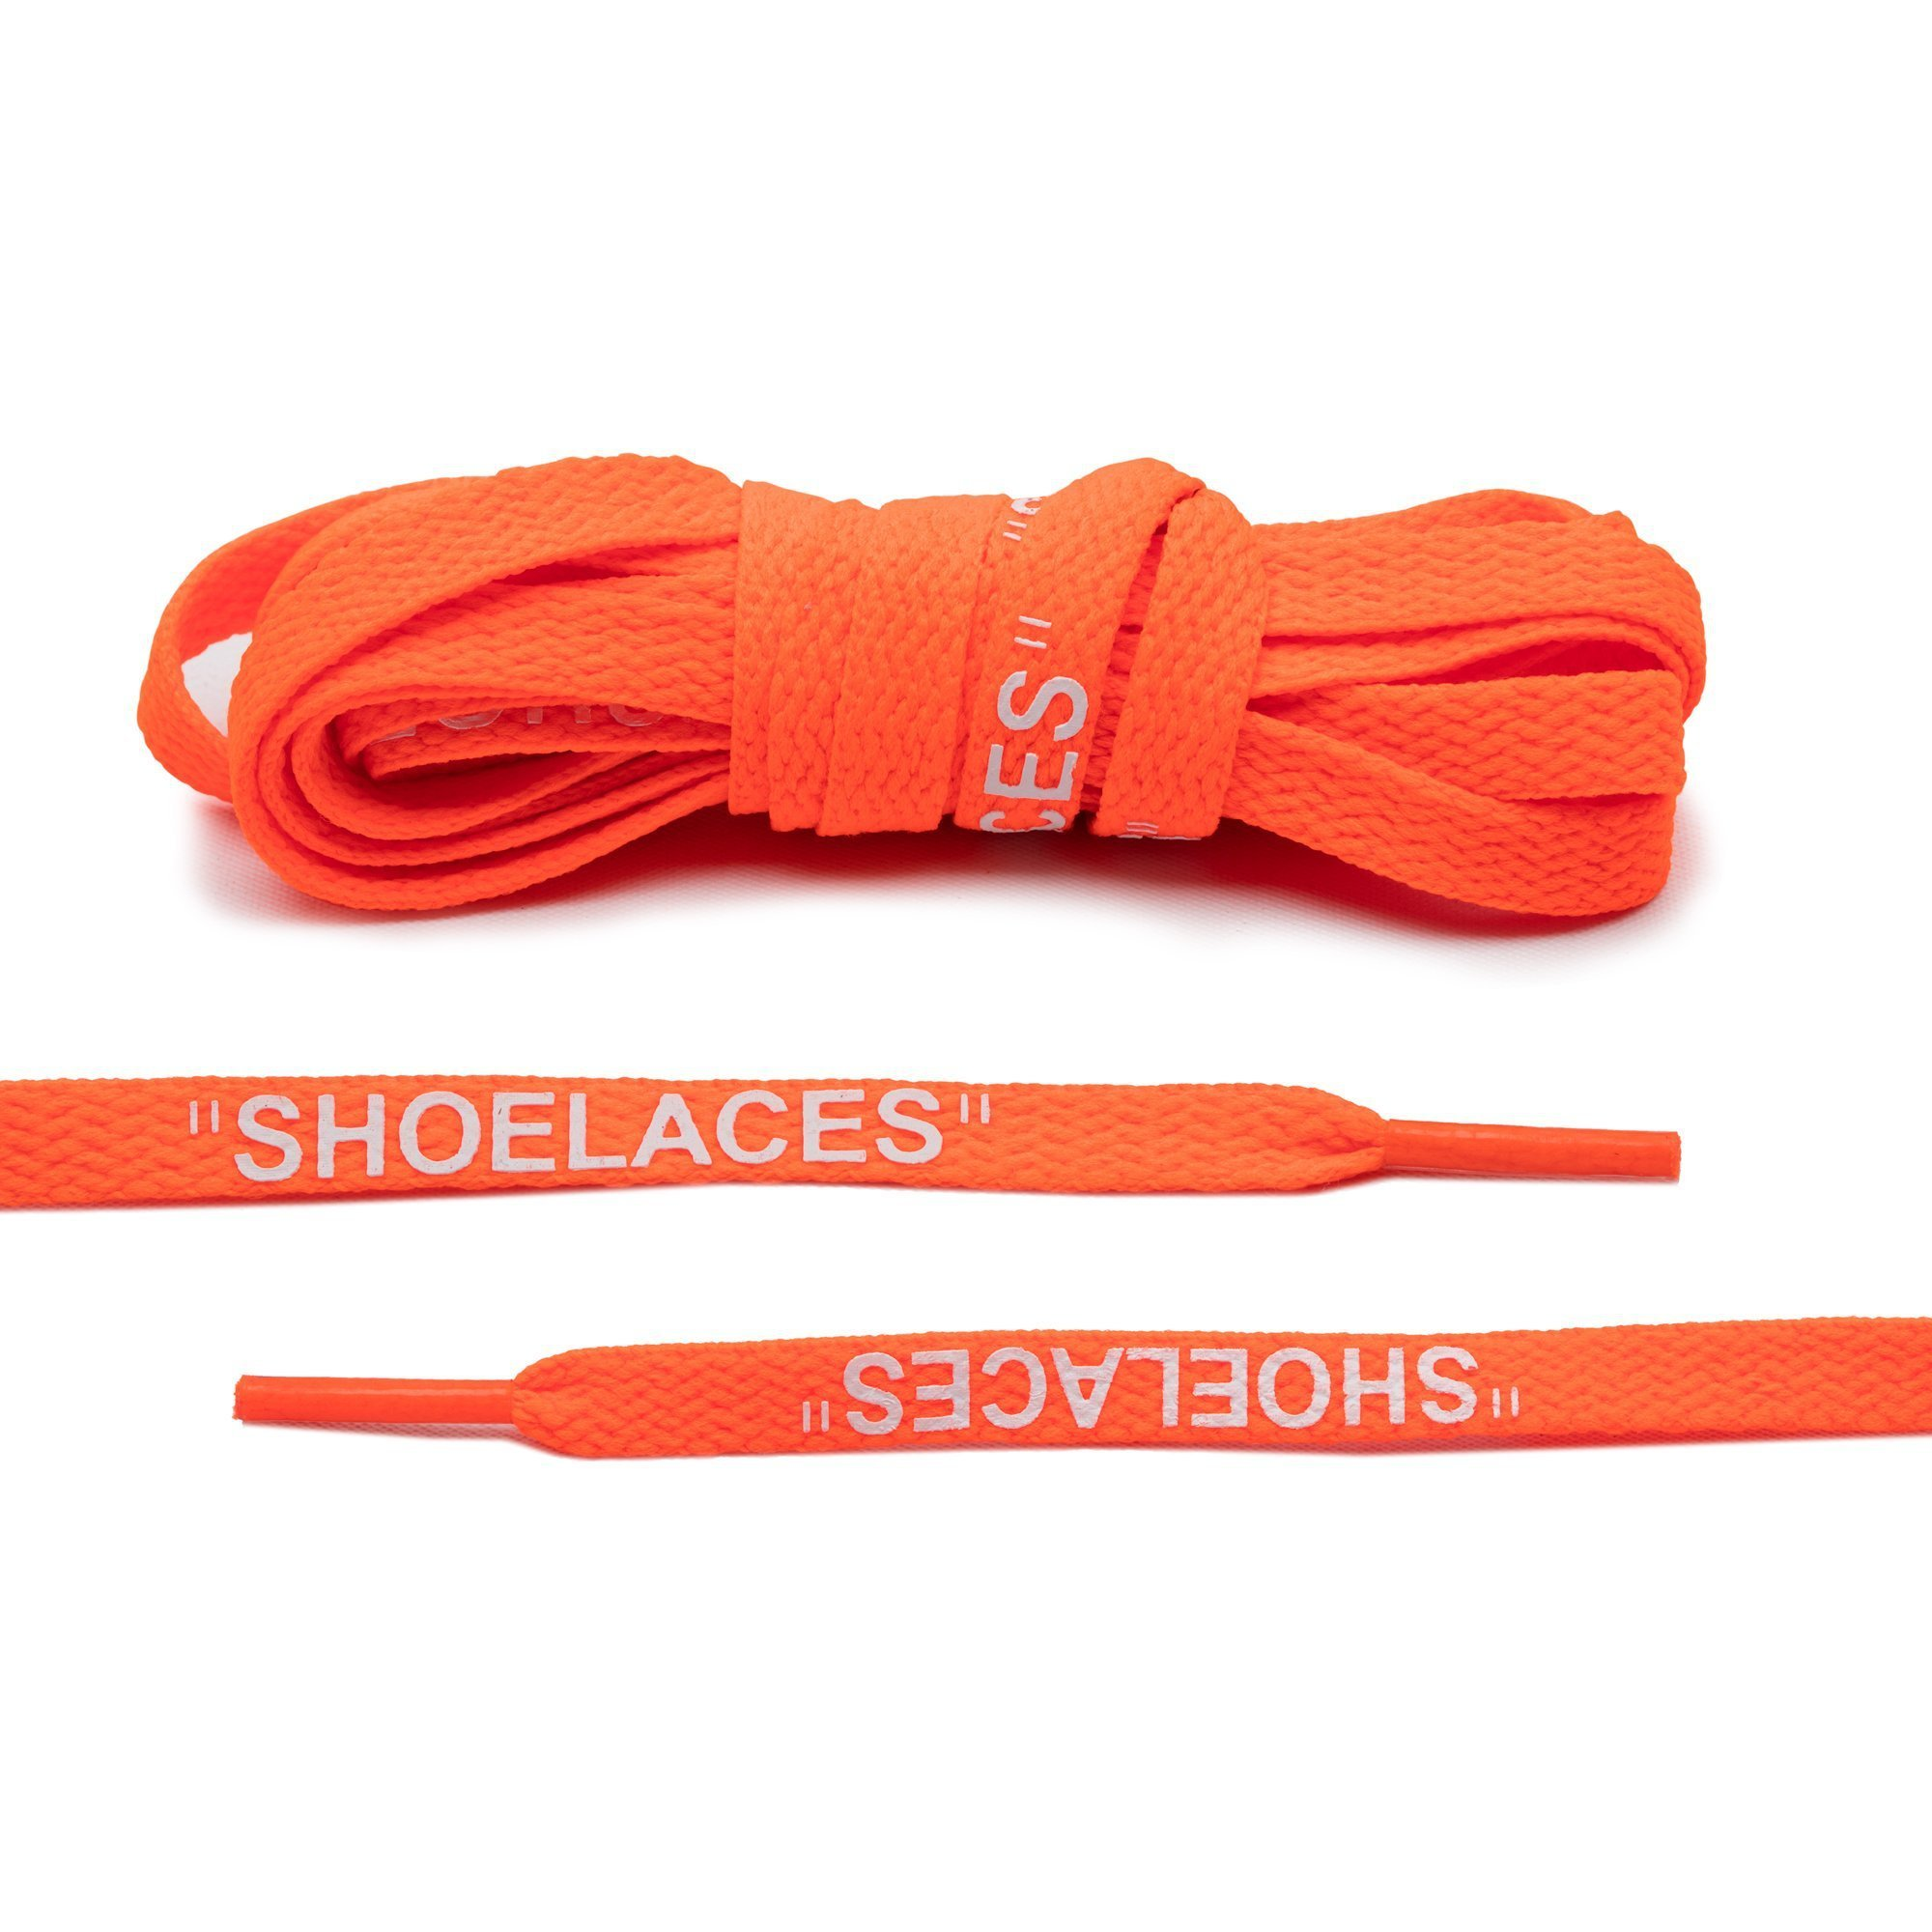 Buy 1 Get 1 Free 100cm long Black Flat Shoe Laces For Trainers 4 to 5 Eyelet